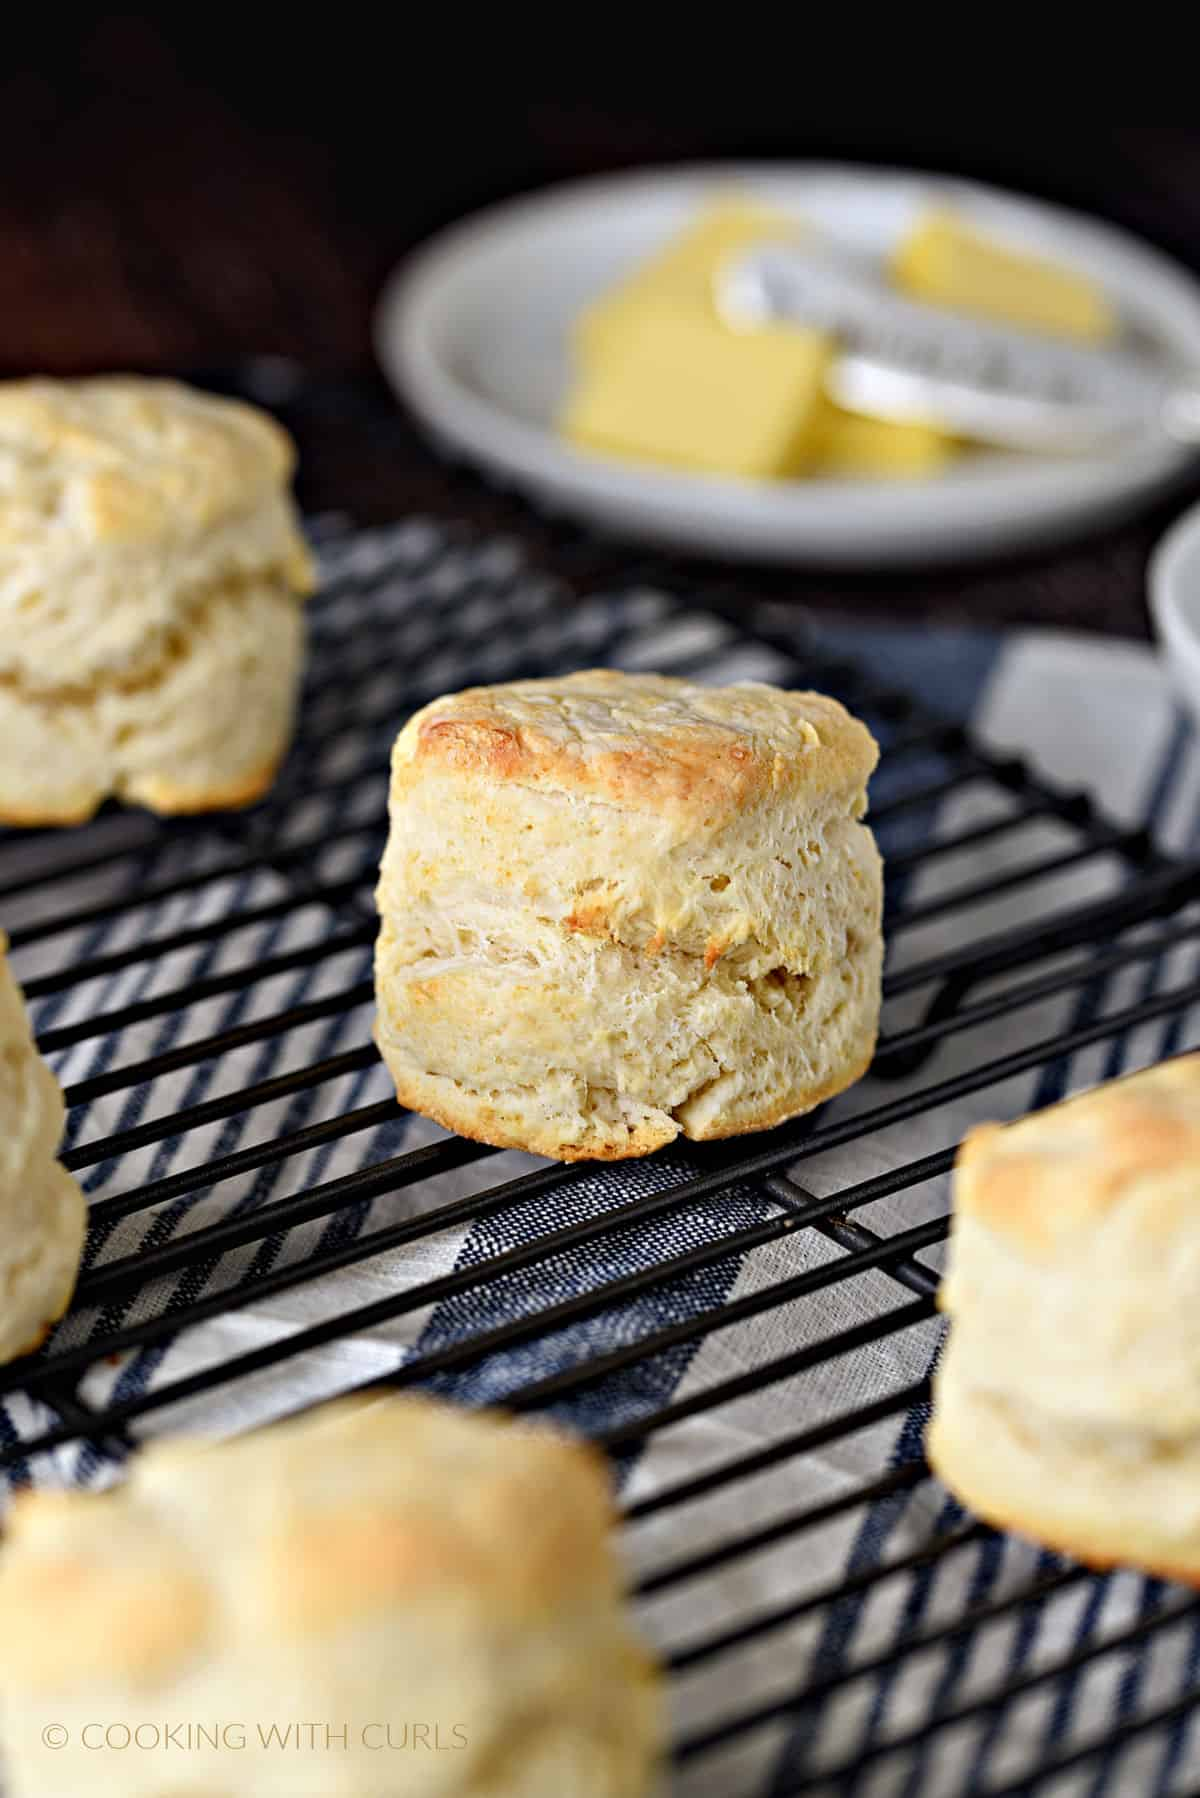 a close up image of a homemade buttermilk biscuit on a black wire cooling rack surrounded by four other biscuits and a white plate with butter slices.